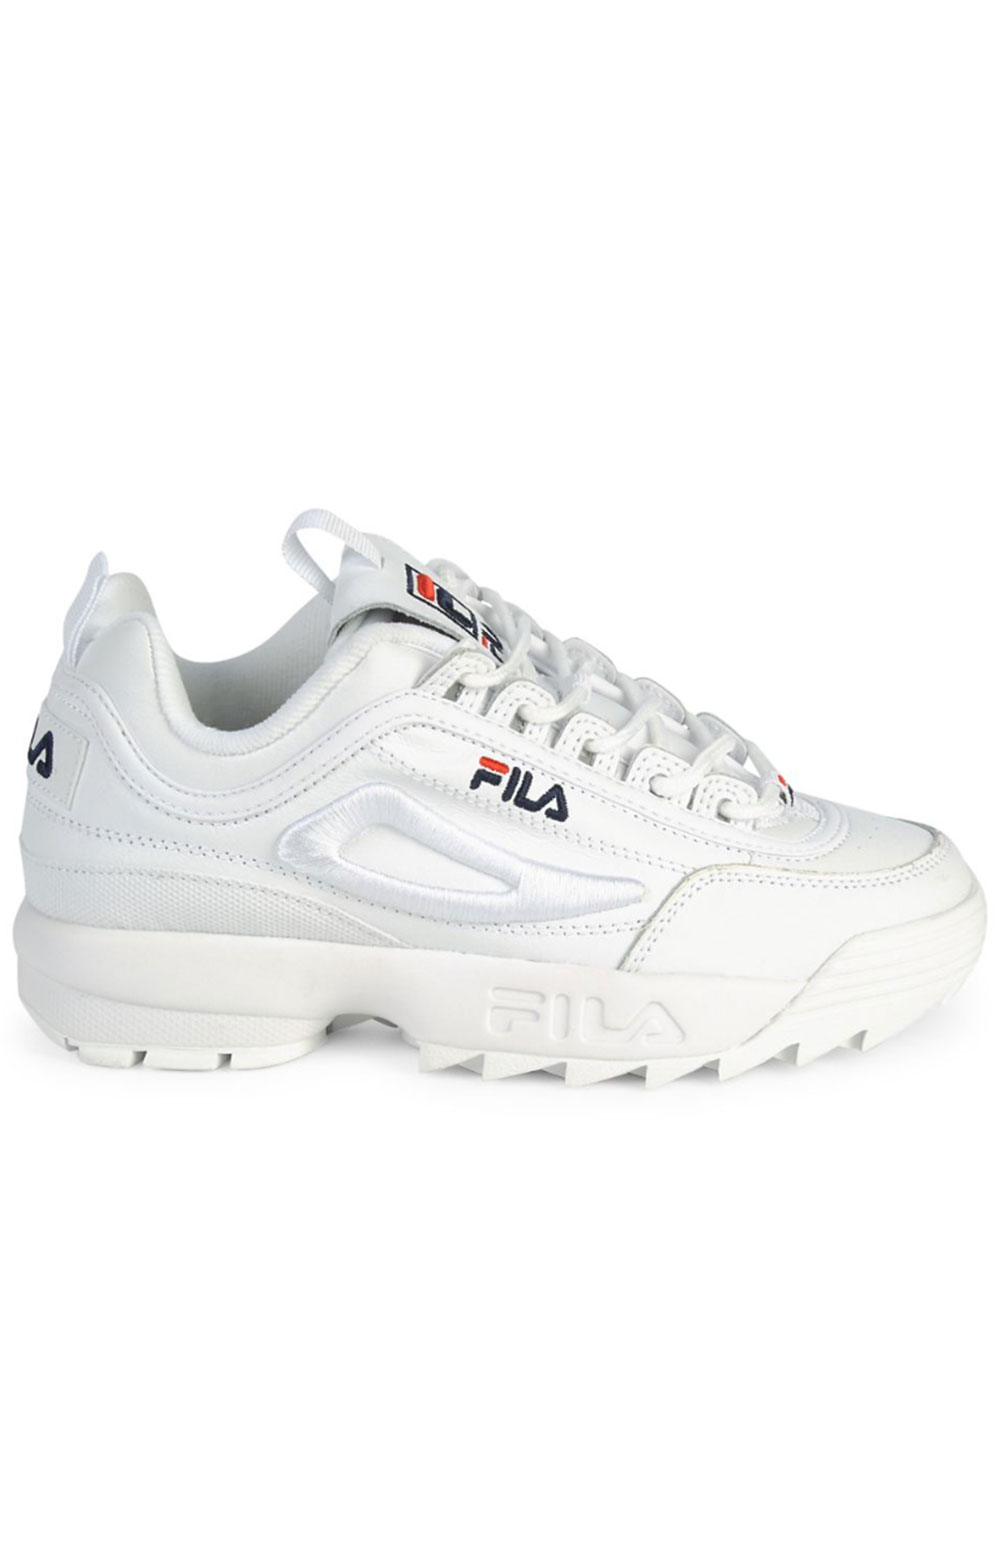 Disruptor II 3D Embroider Shoes - White/Navy/Red